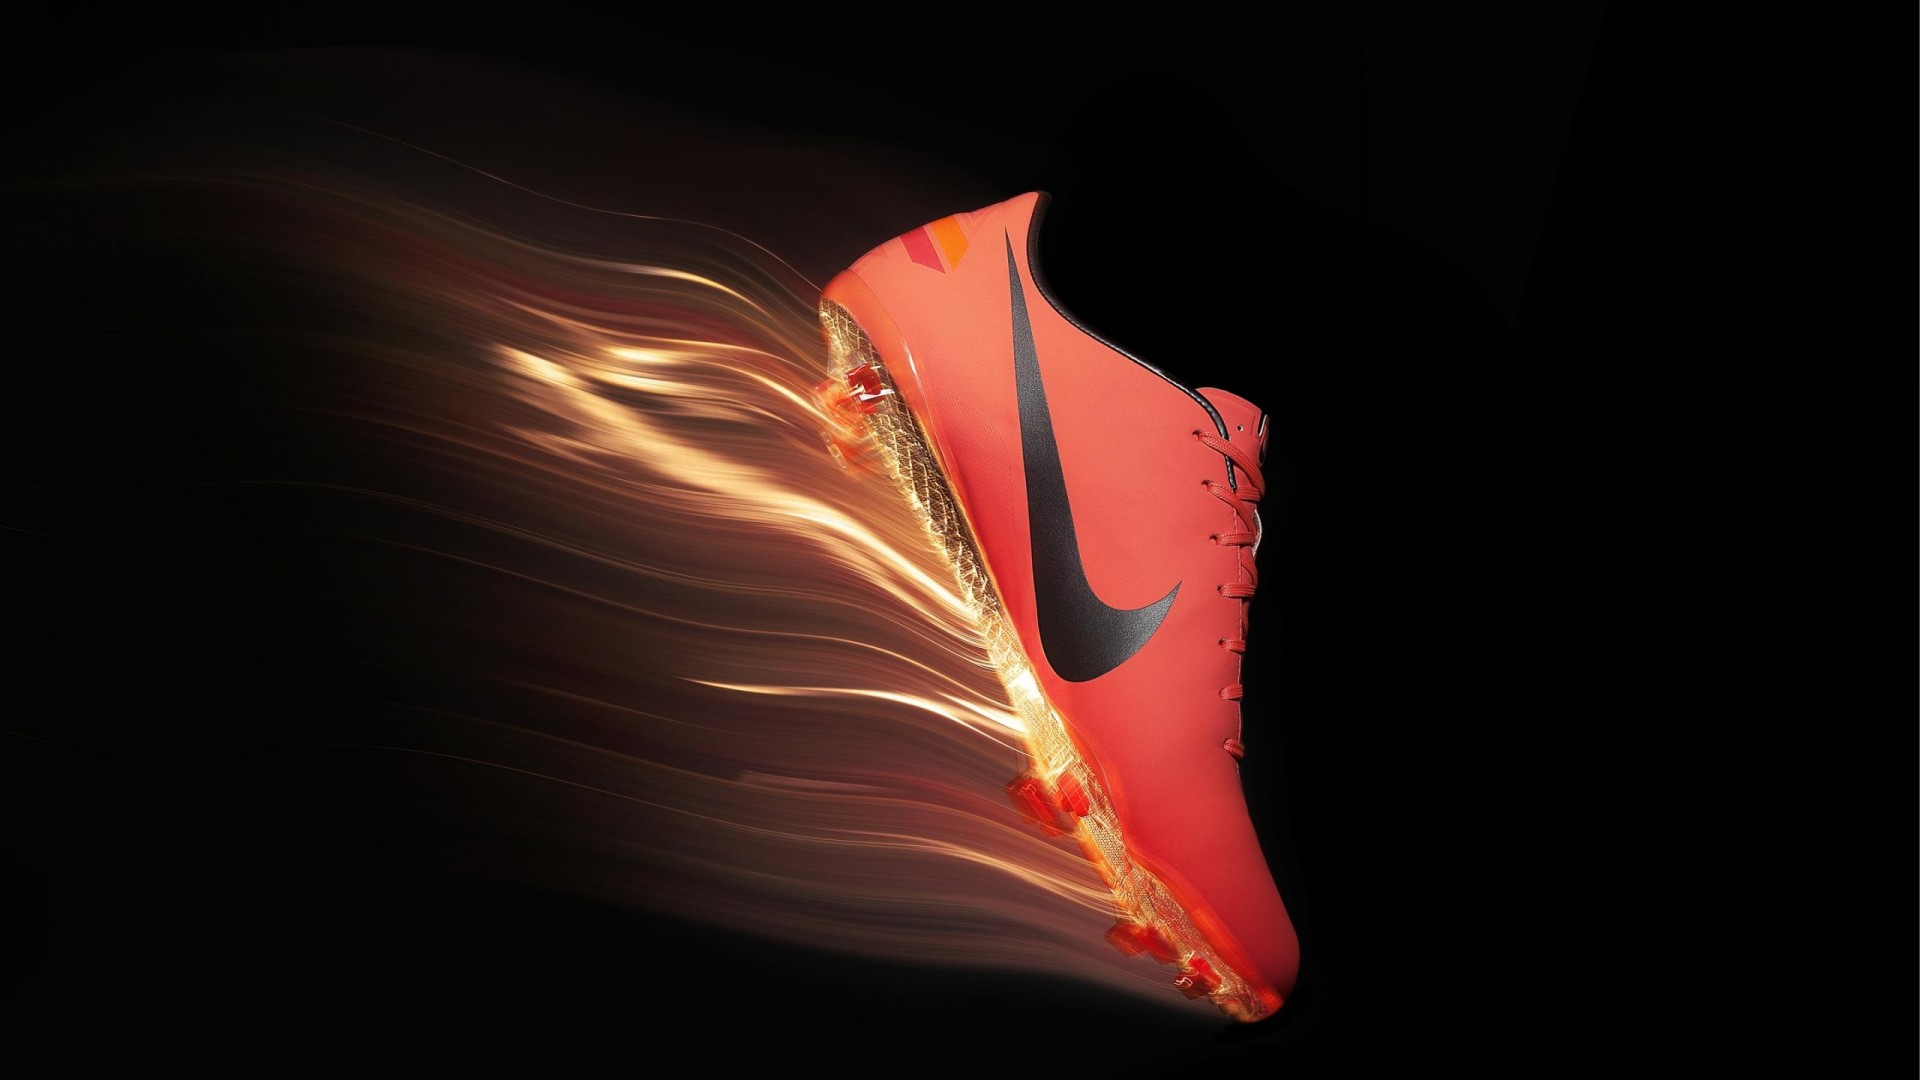 Red Nike Football Shoes Wallpaper Desktop Wallpaper with 1920x1080 1920x1080